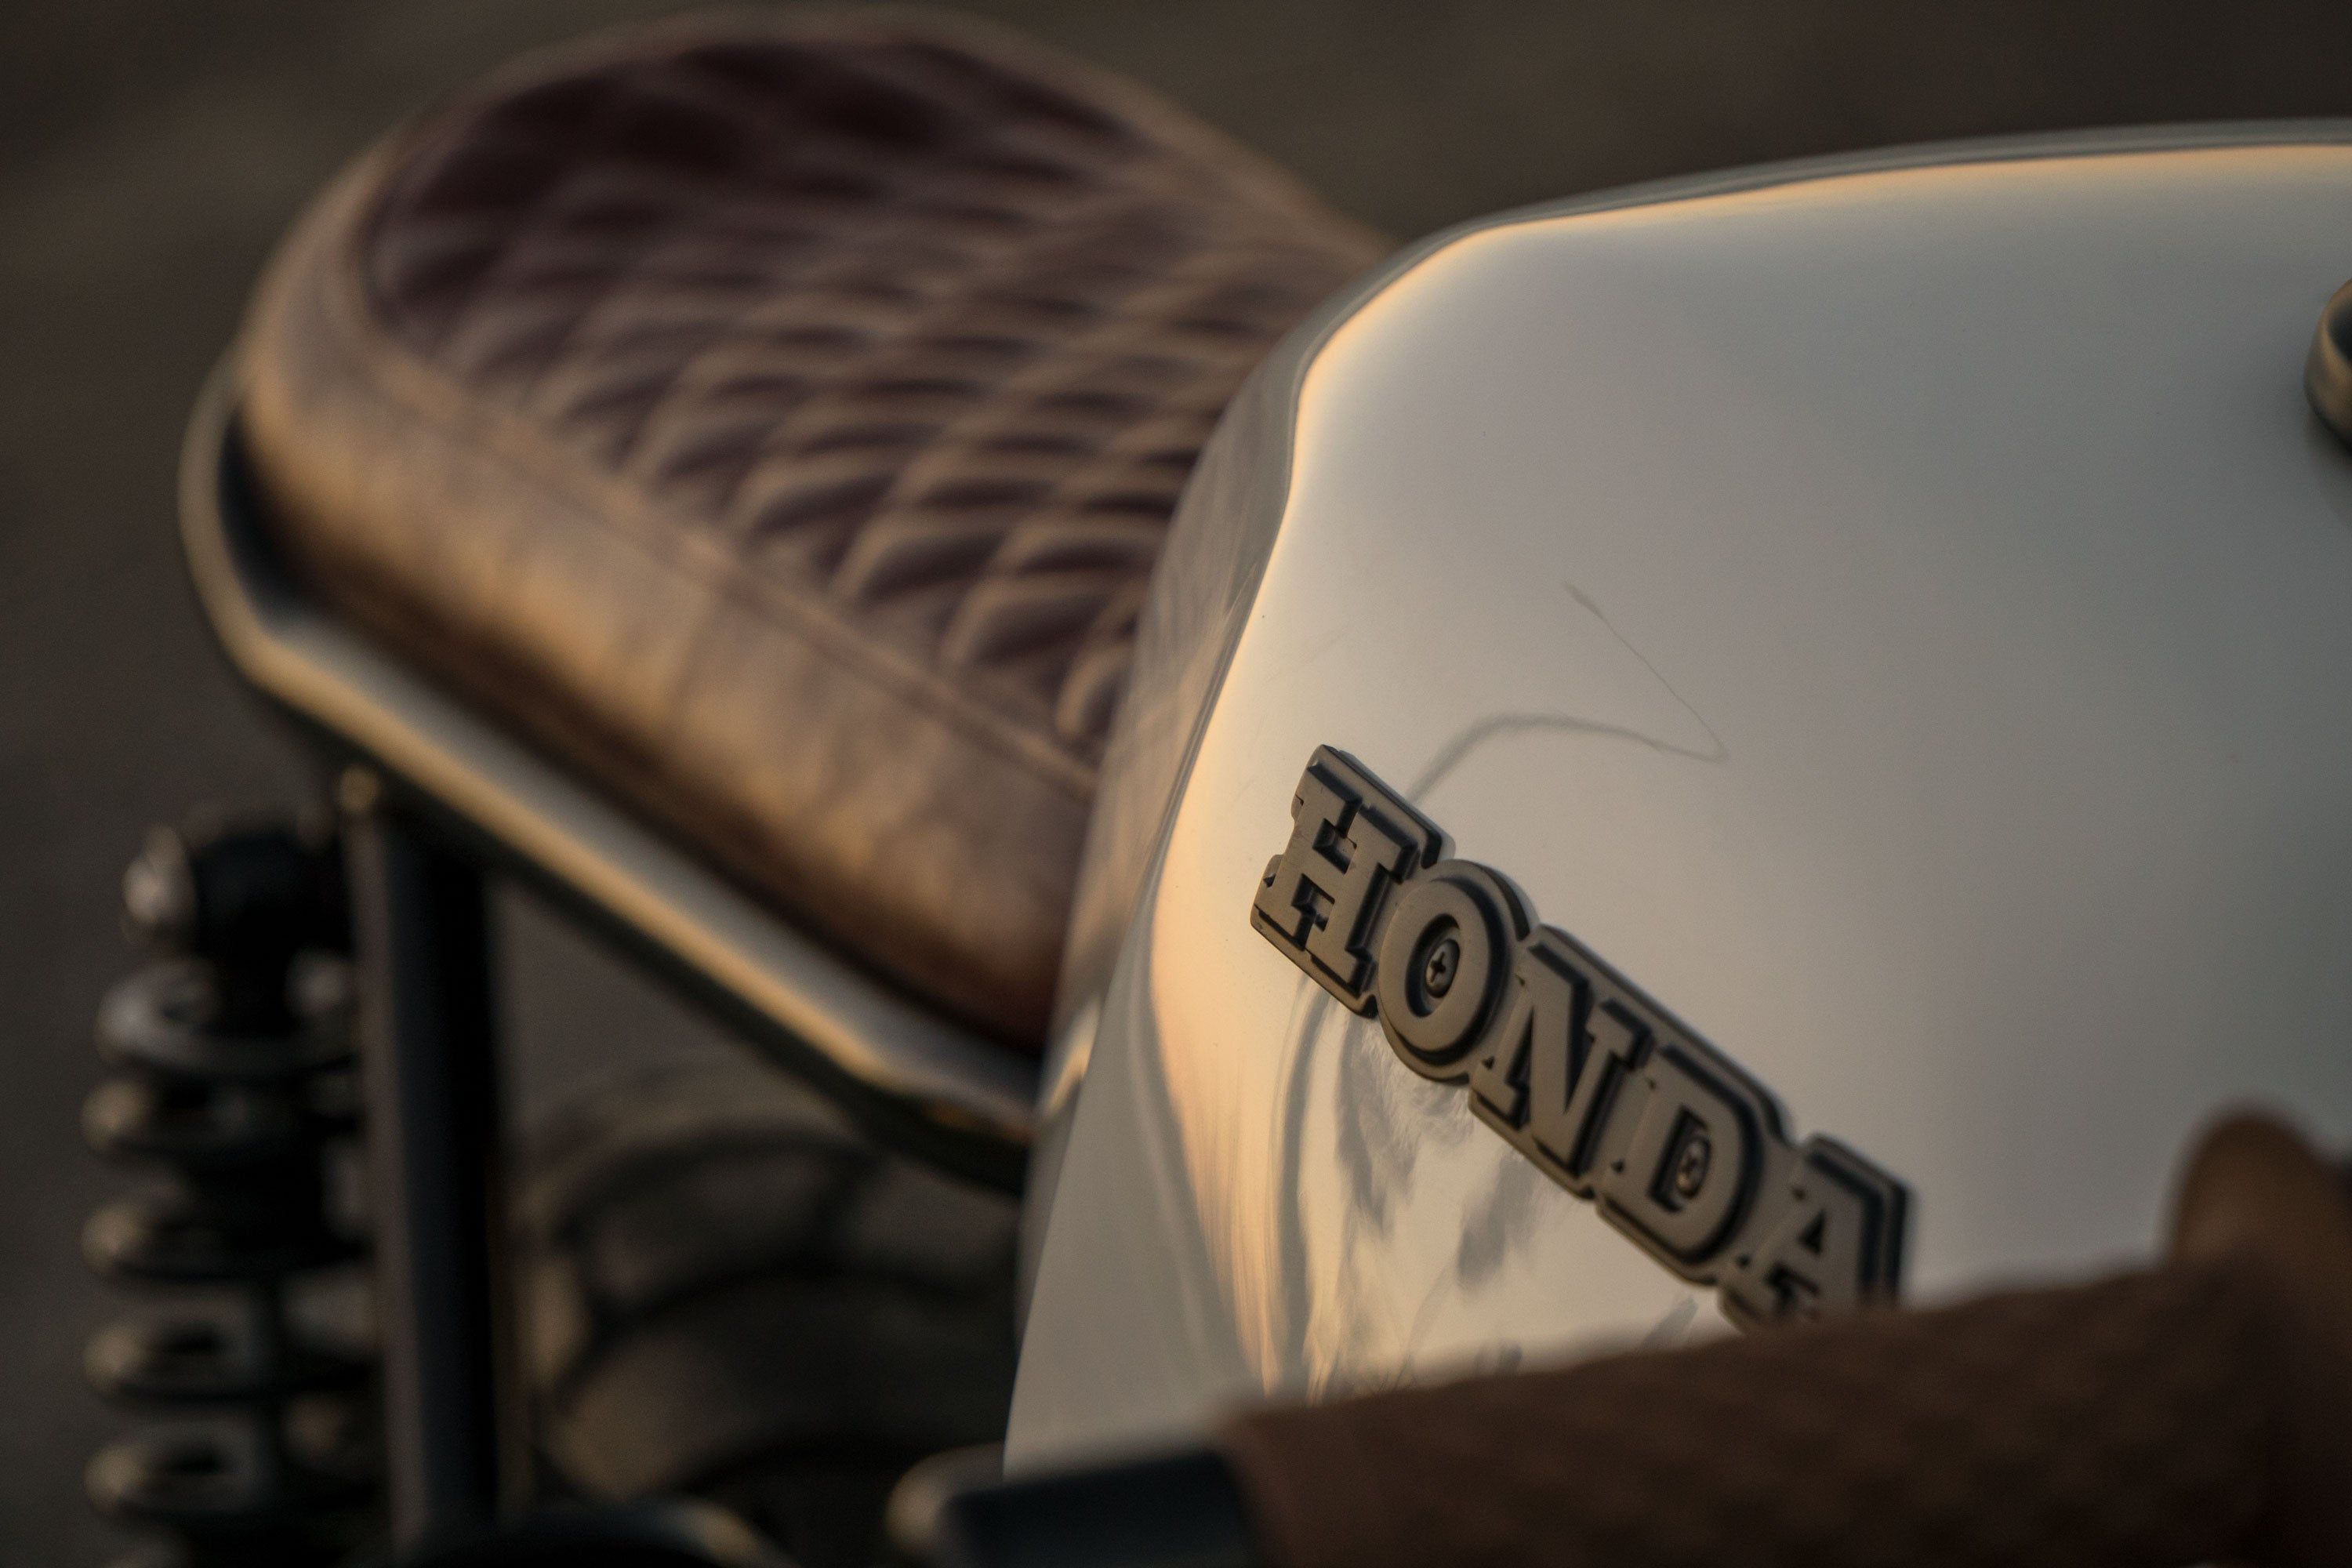 1978 Honda CX500 Cafe racer scotch and iron